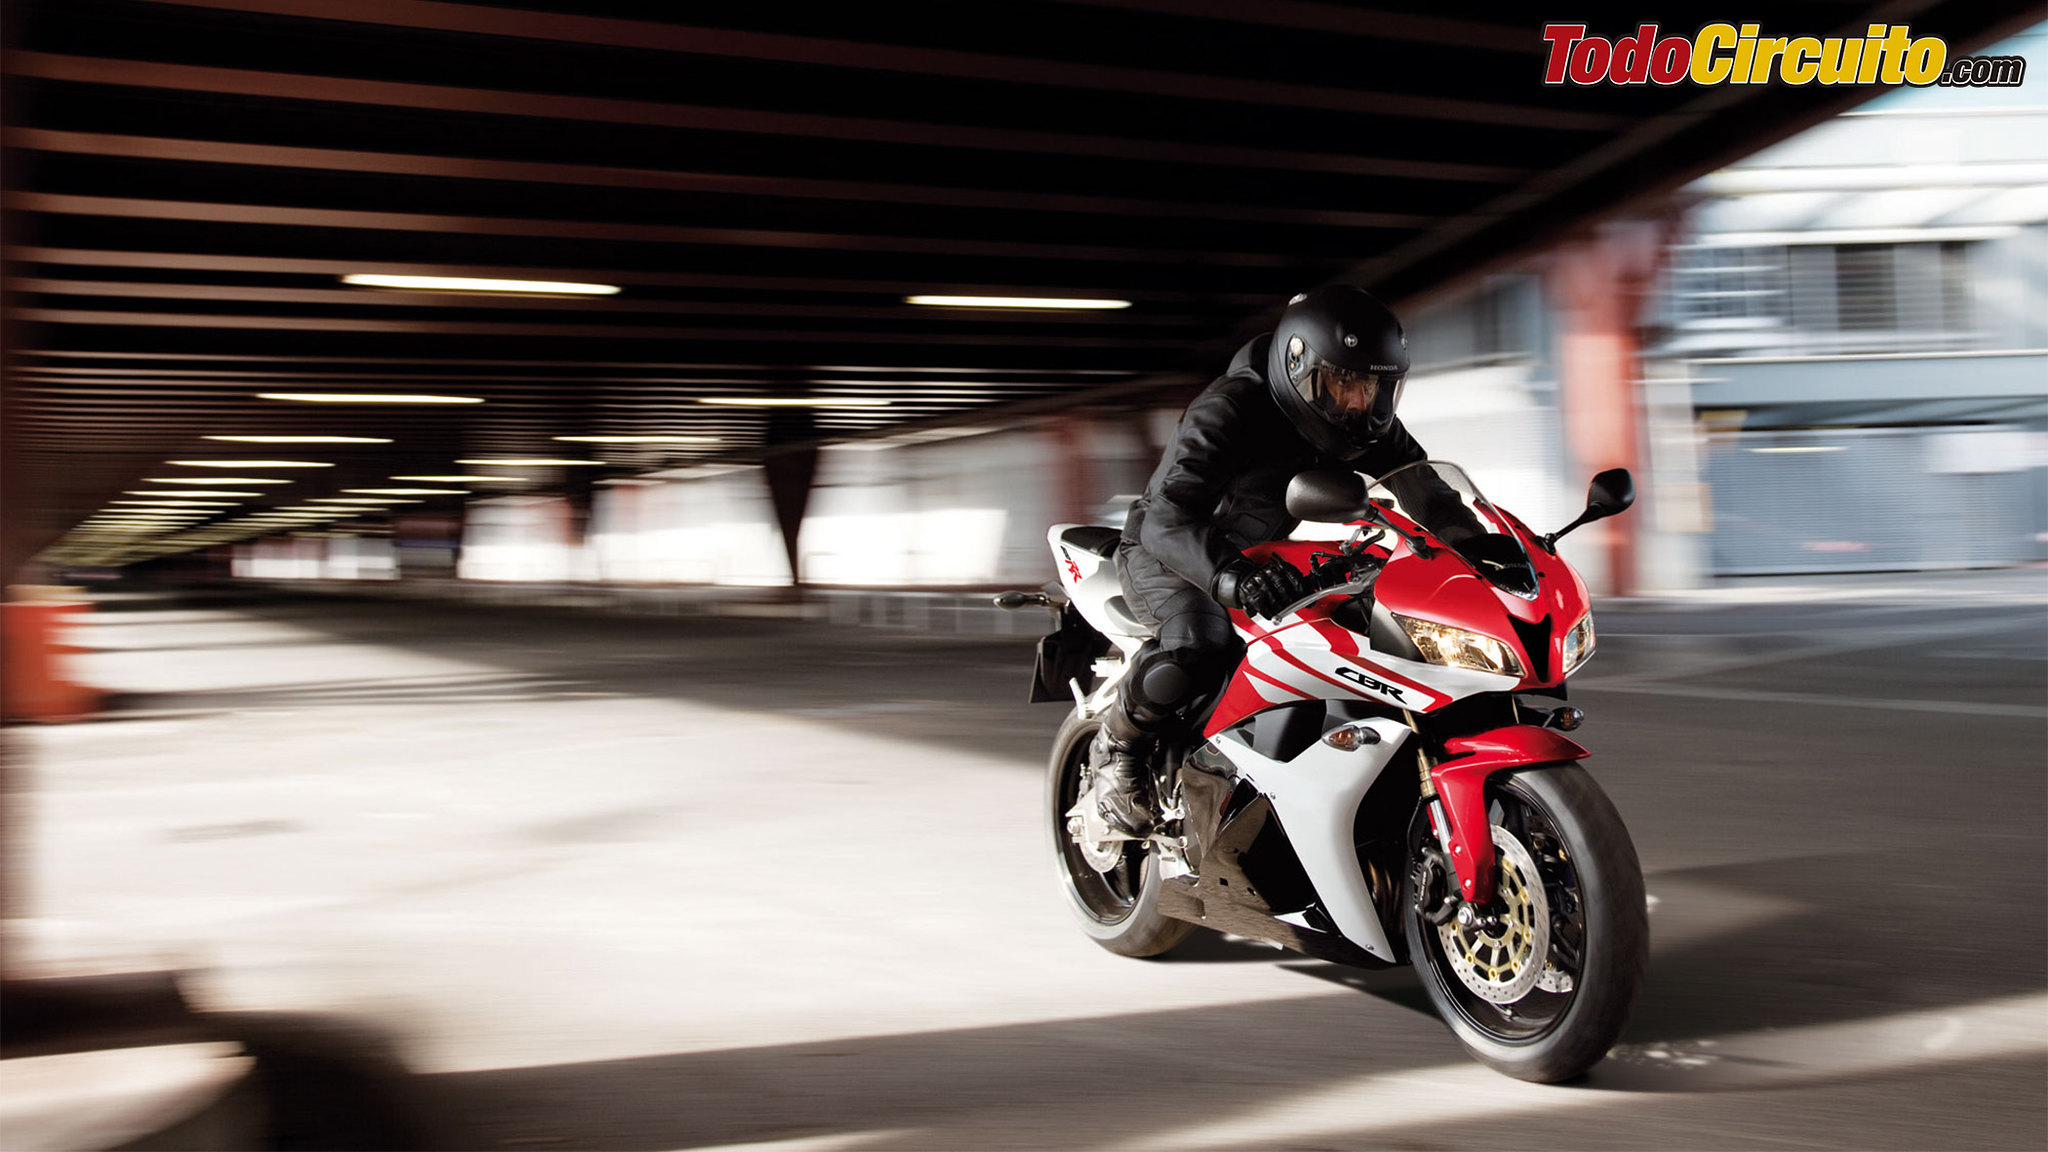 Wallpapers Hd Honda Cbr 600rr 2009 2012